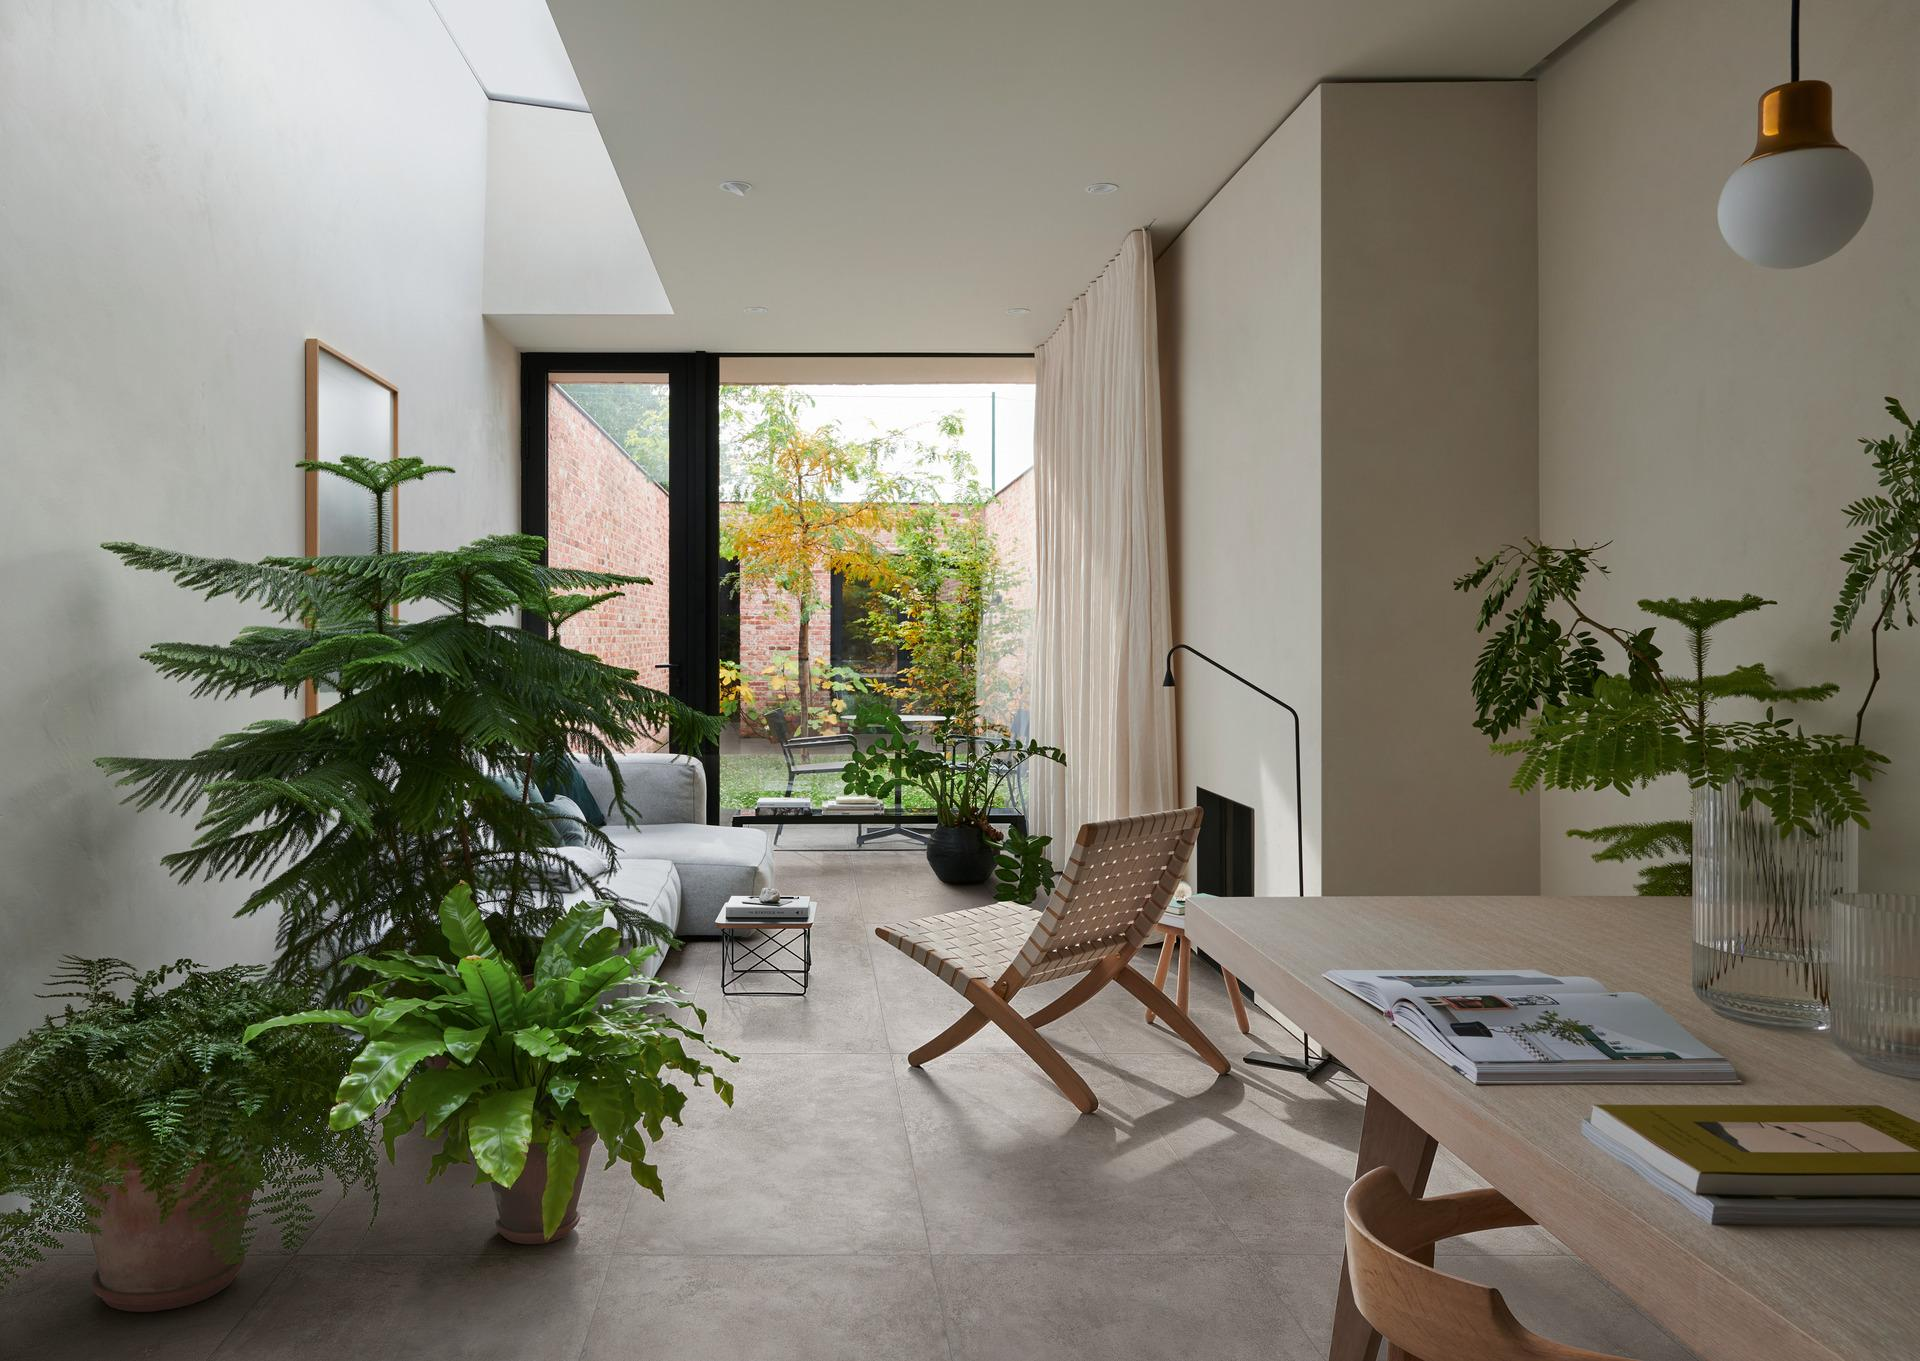 Plaza - Concrete Effect - Indoor and Outdoor